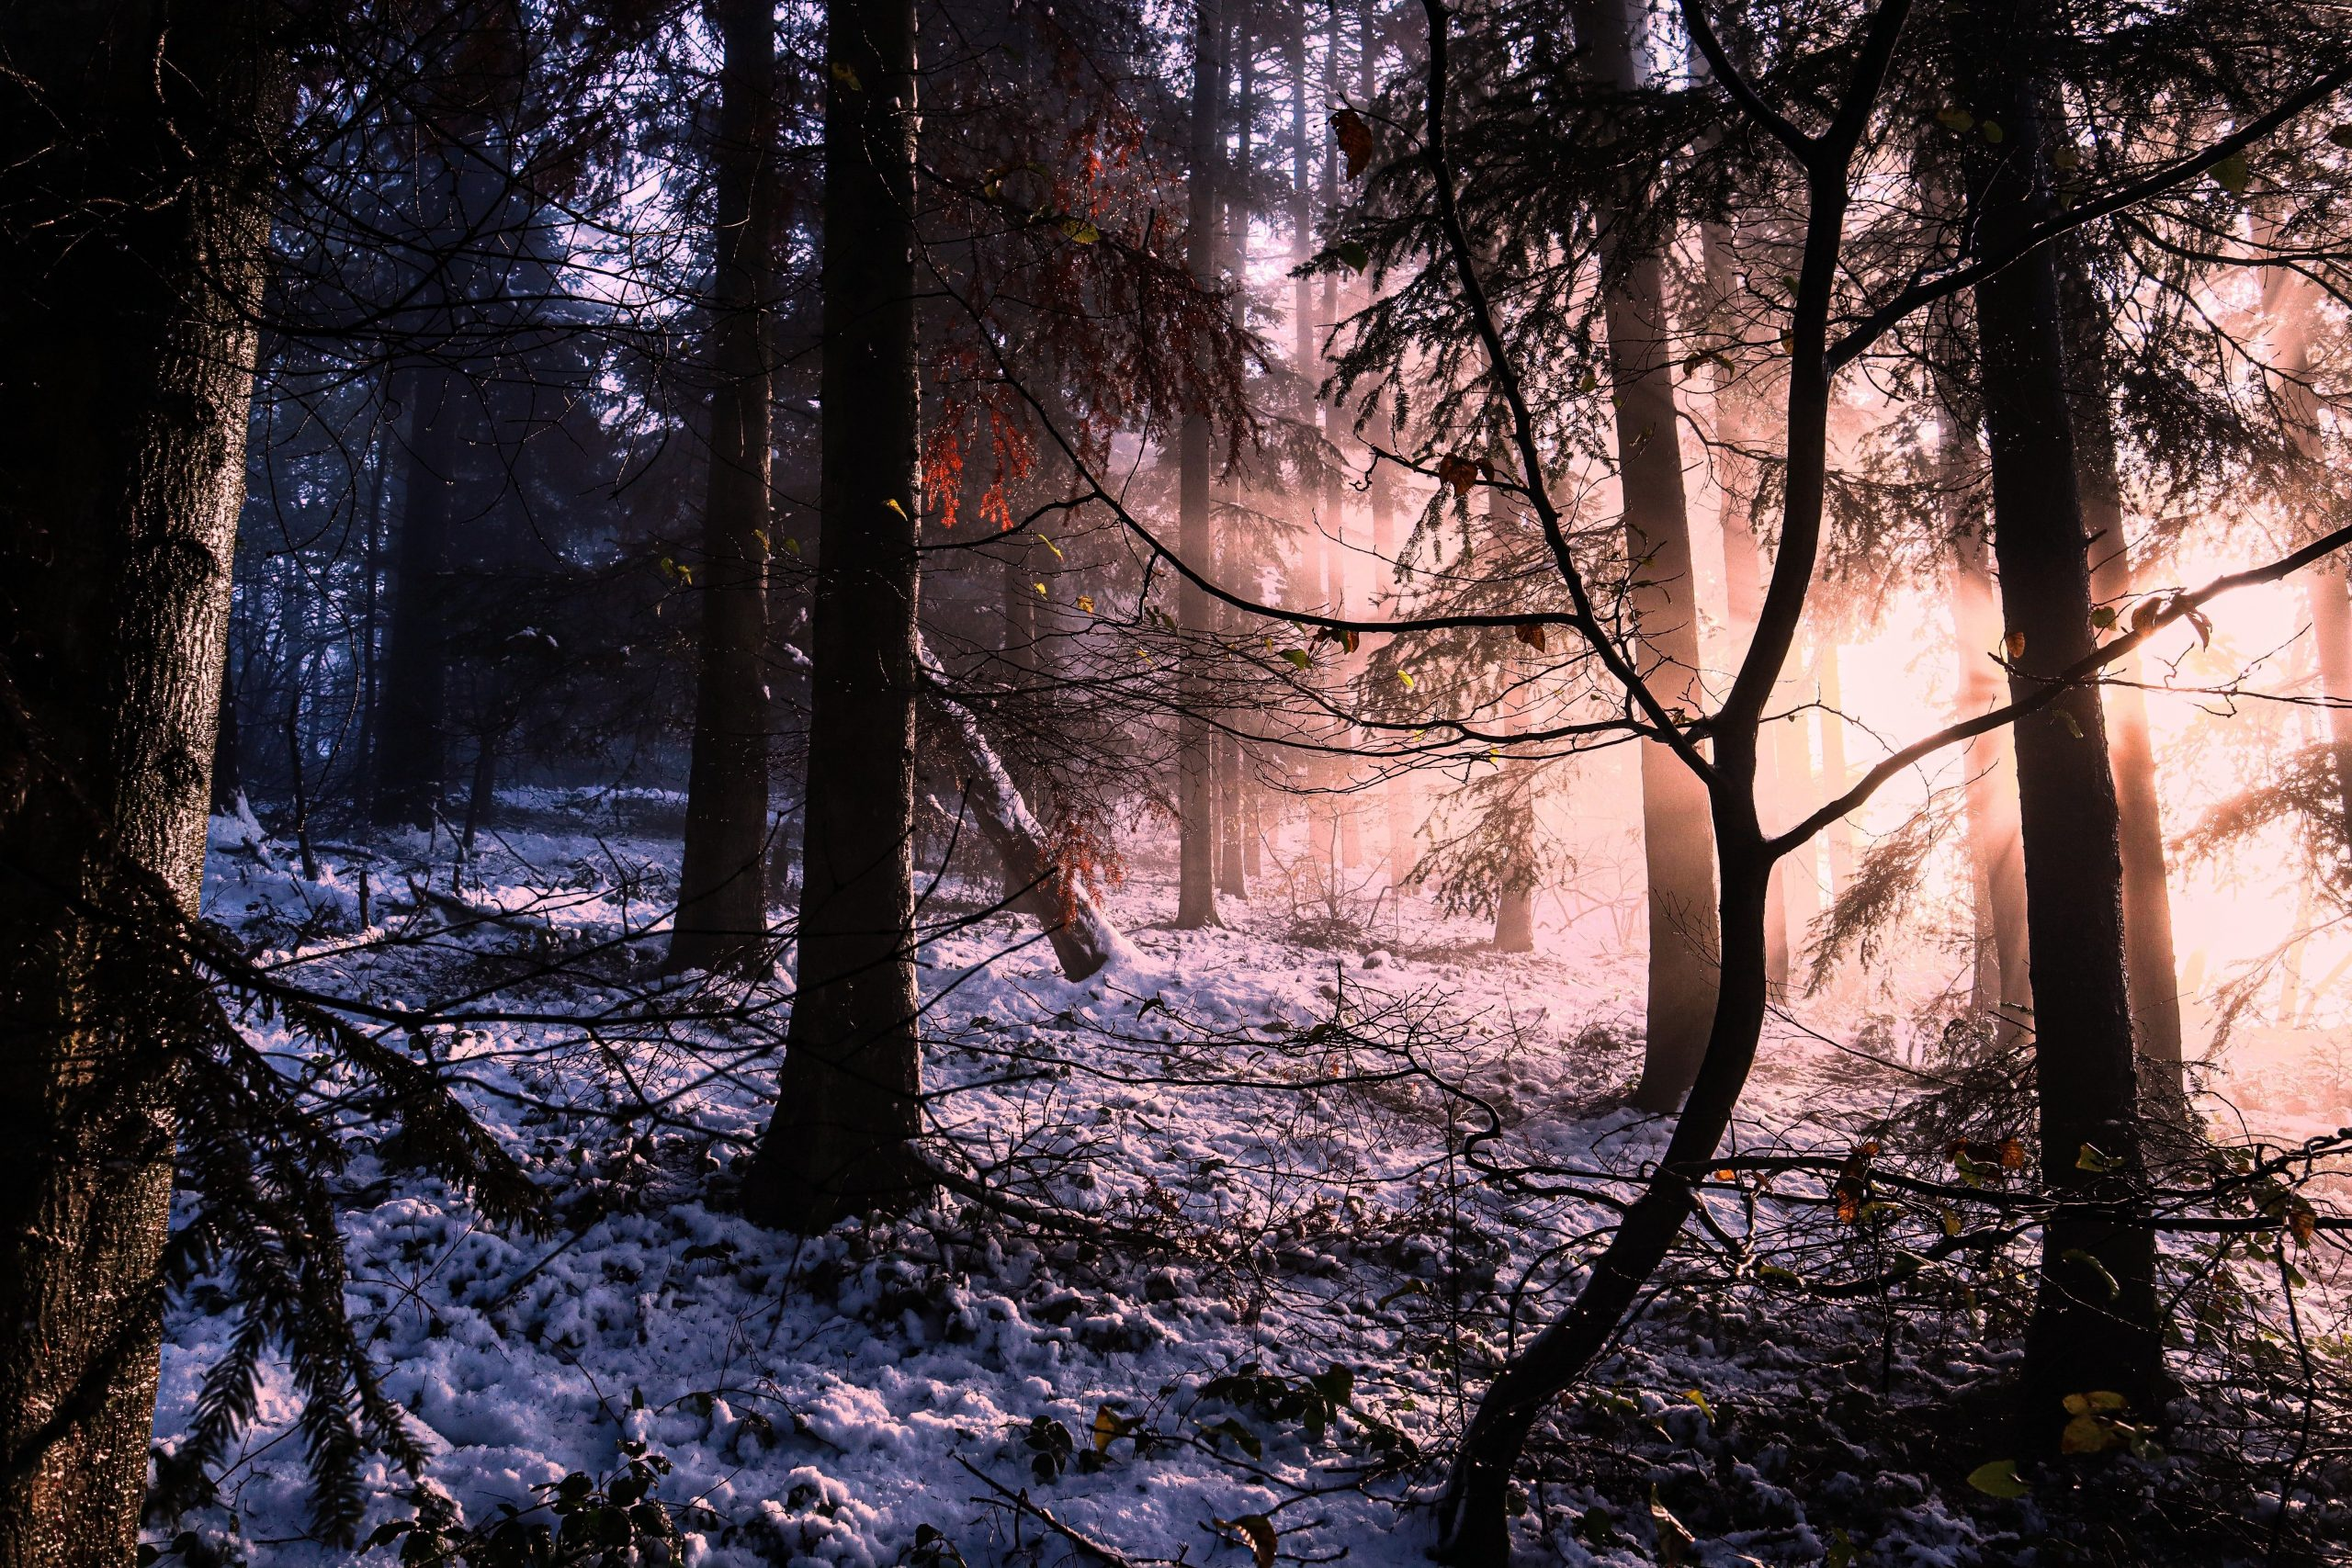 In the winter forest at sunset